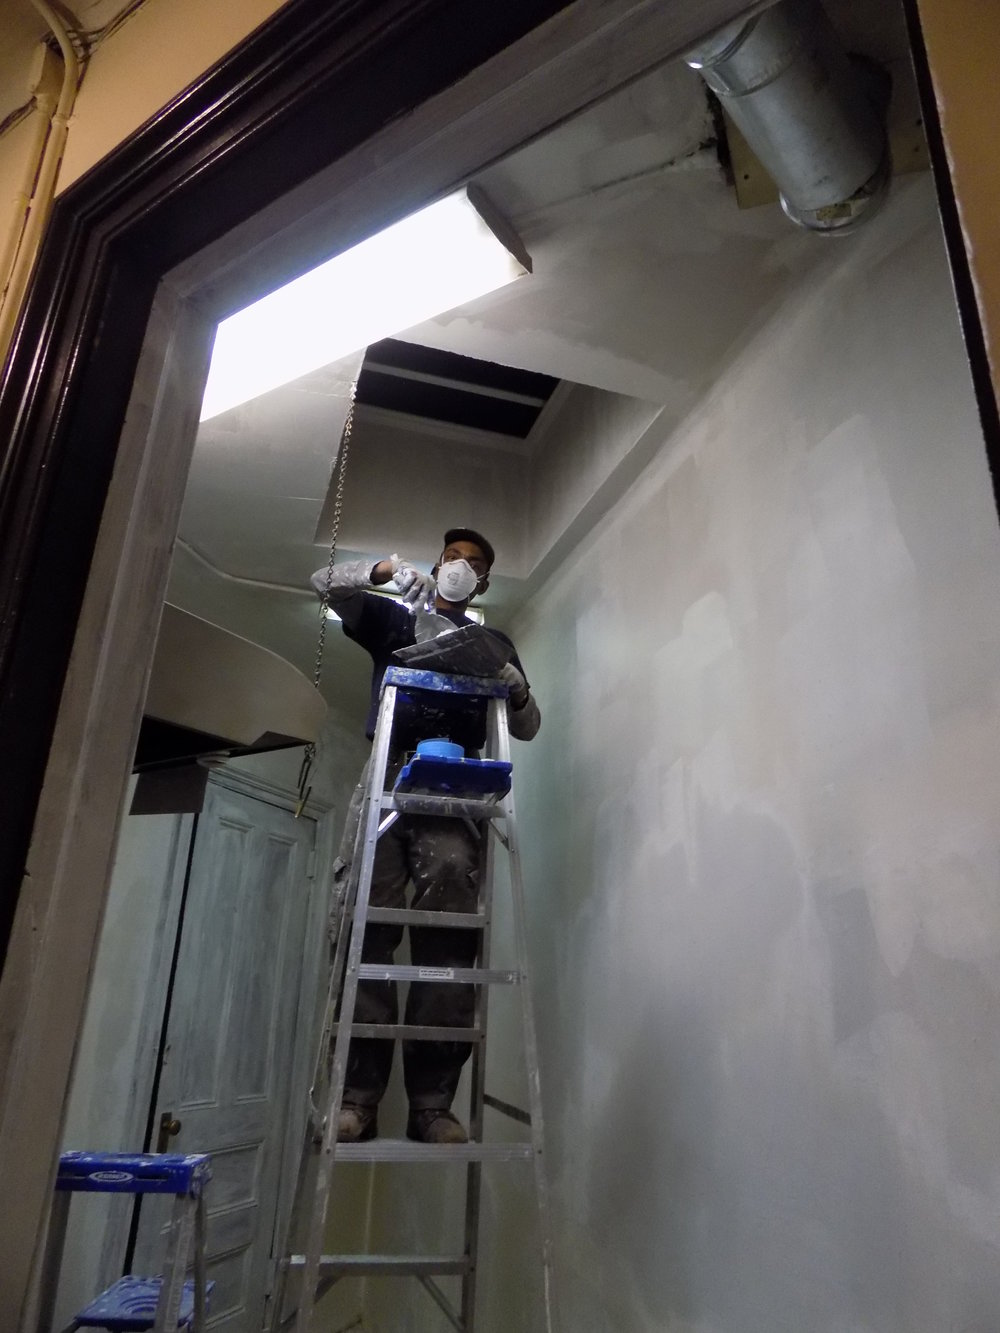 The renovation of the Smoke Room has begun. The Rector is hopeful that it will be in use    on Sunday, March 19.